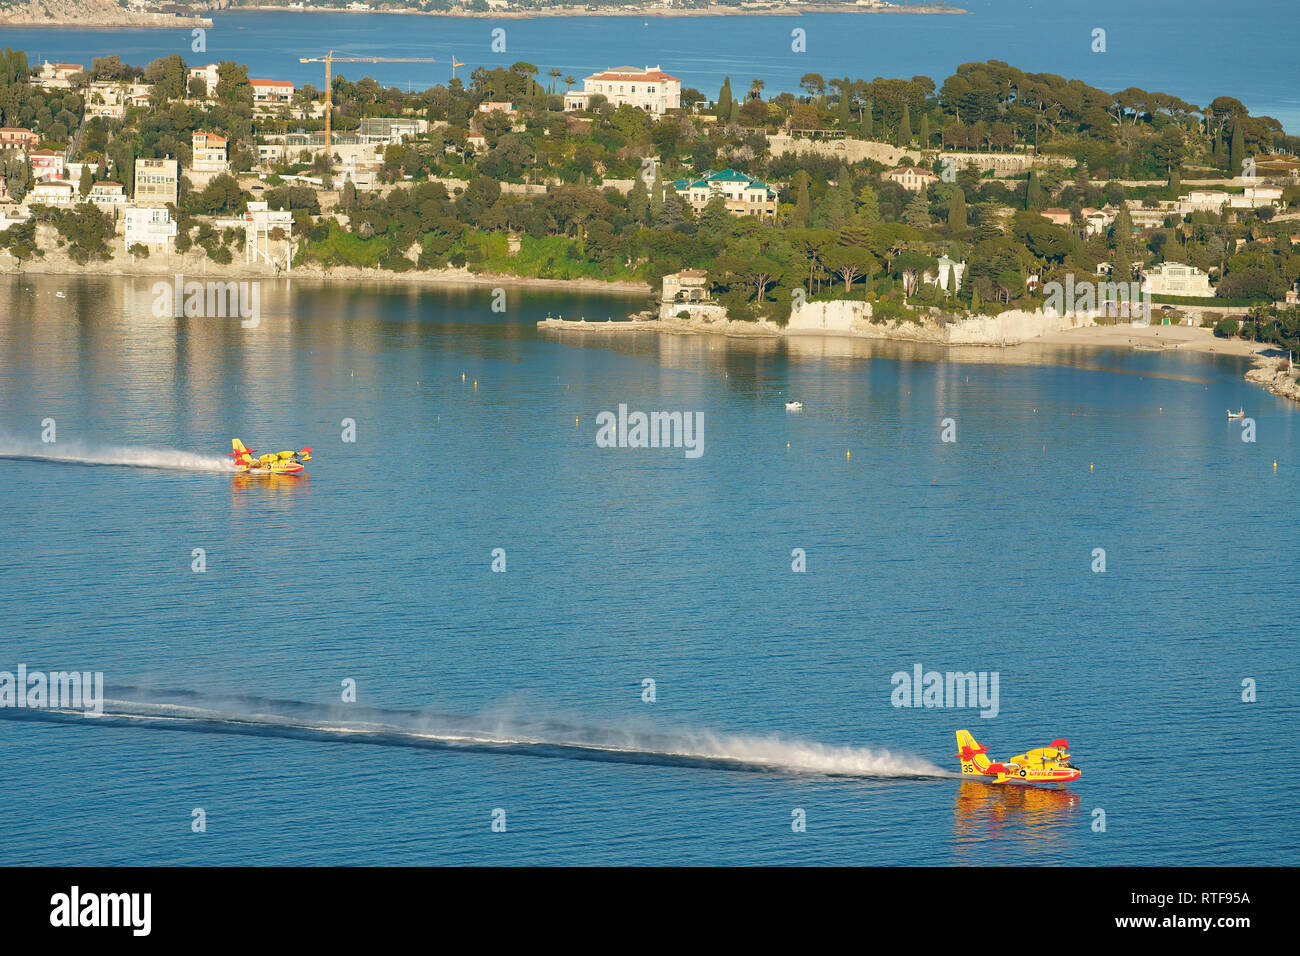 TWO CANADAIR CL-415 REFILLING IN THE SHELTERED BAY OF VILLEFRANCHE-SUR-MER TO COMBAT A NEARBY BRUSHFIRE. Saint-Jean Cap Ferrat, French Riviera, France. - Stock Image